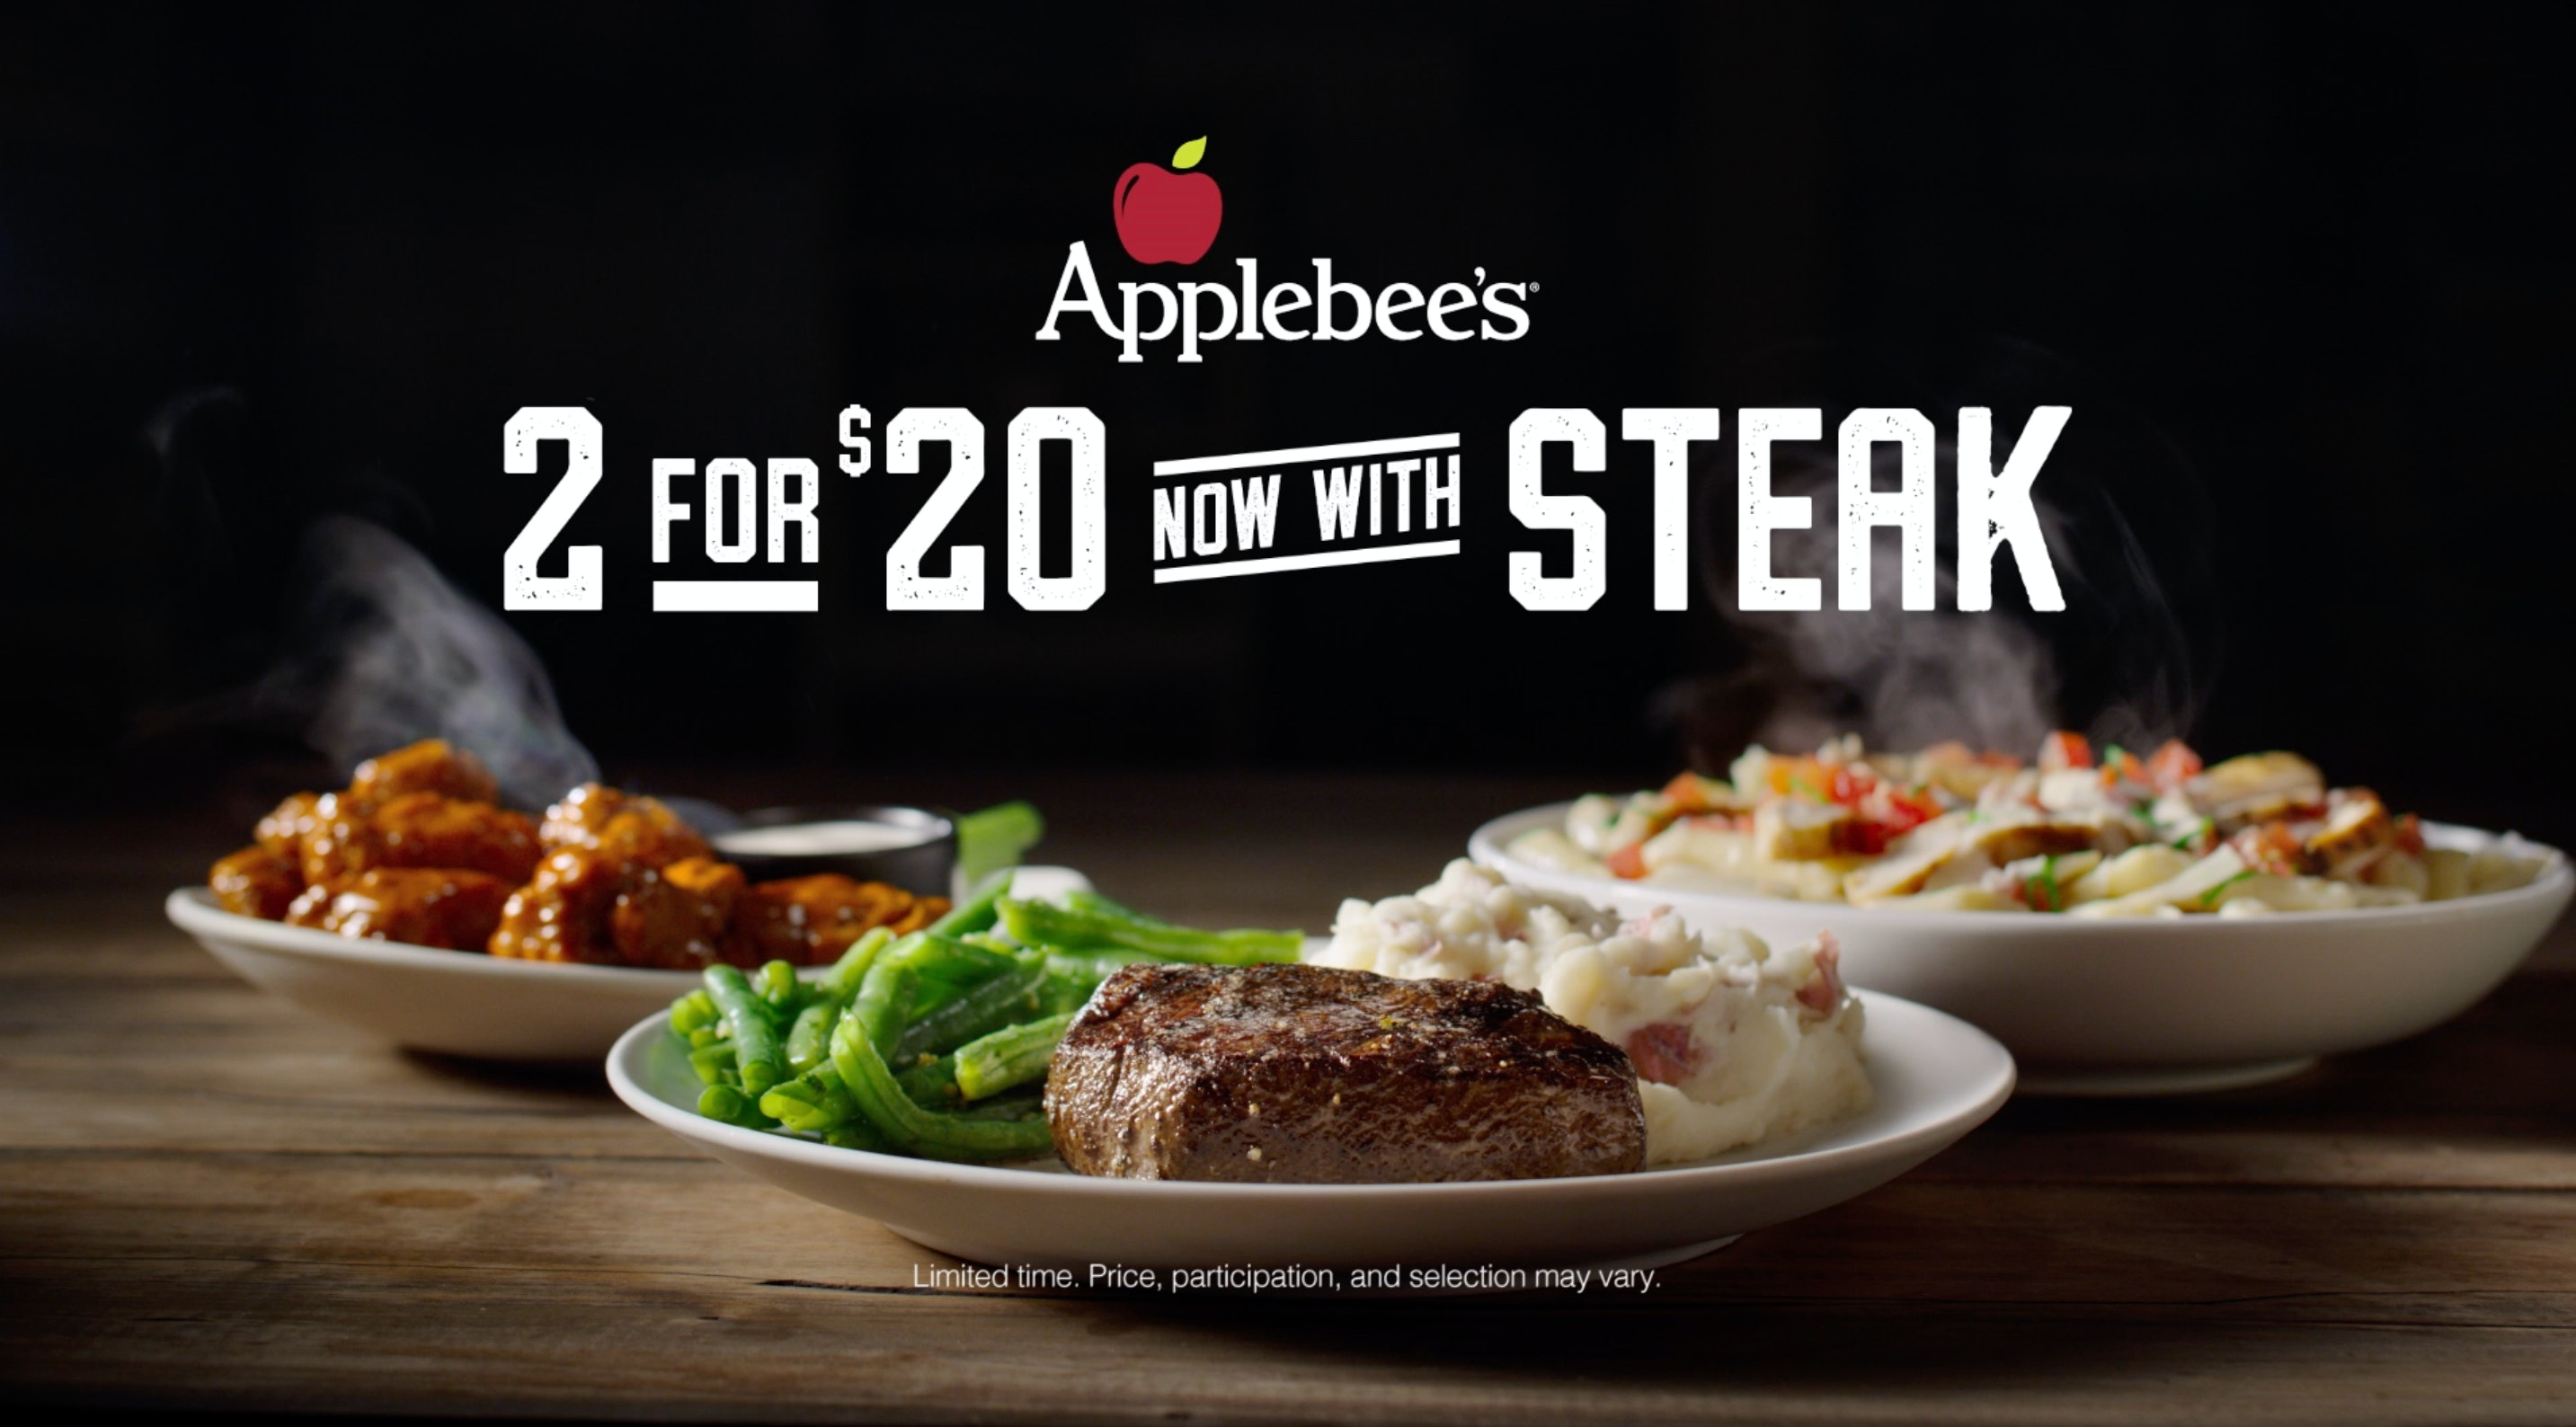 does applebee's 2 for $20 menu include steak? a special deal is coming